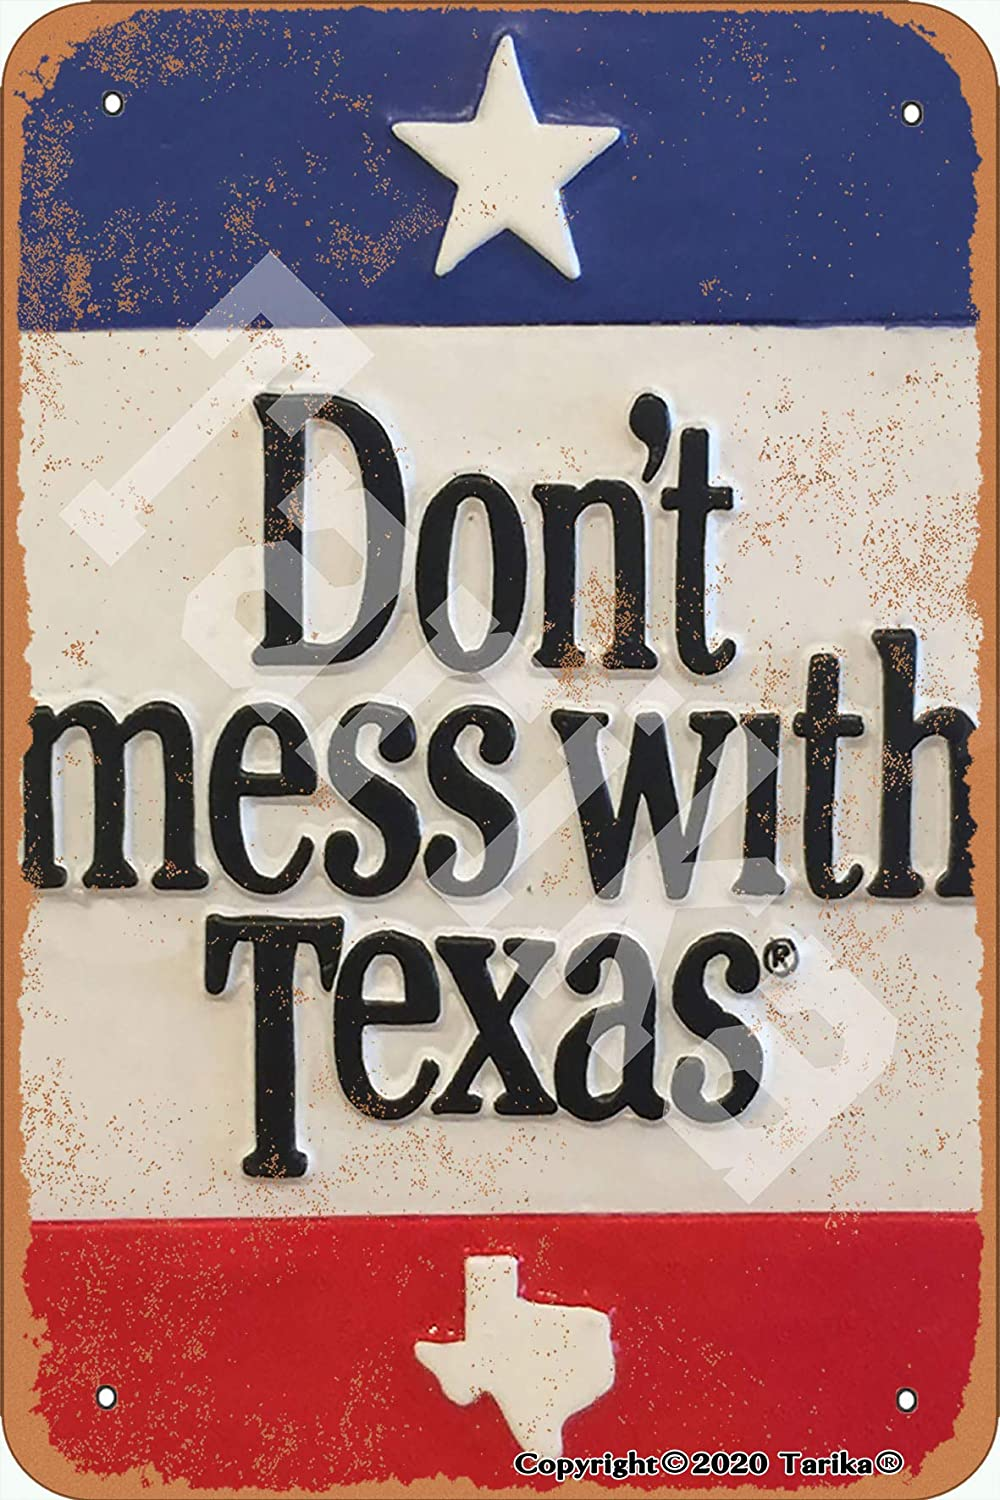 Tarika Don't Mess with Texas 8X12 Inch Retro Look Iron Decoration Painting Sign for Home Funny Wall Decor